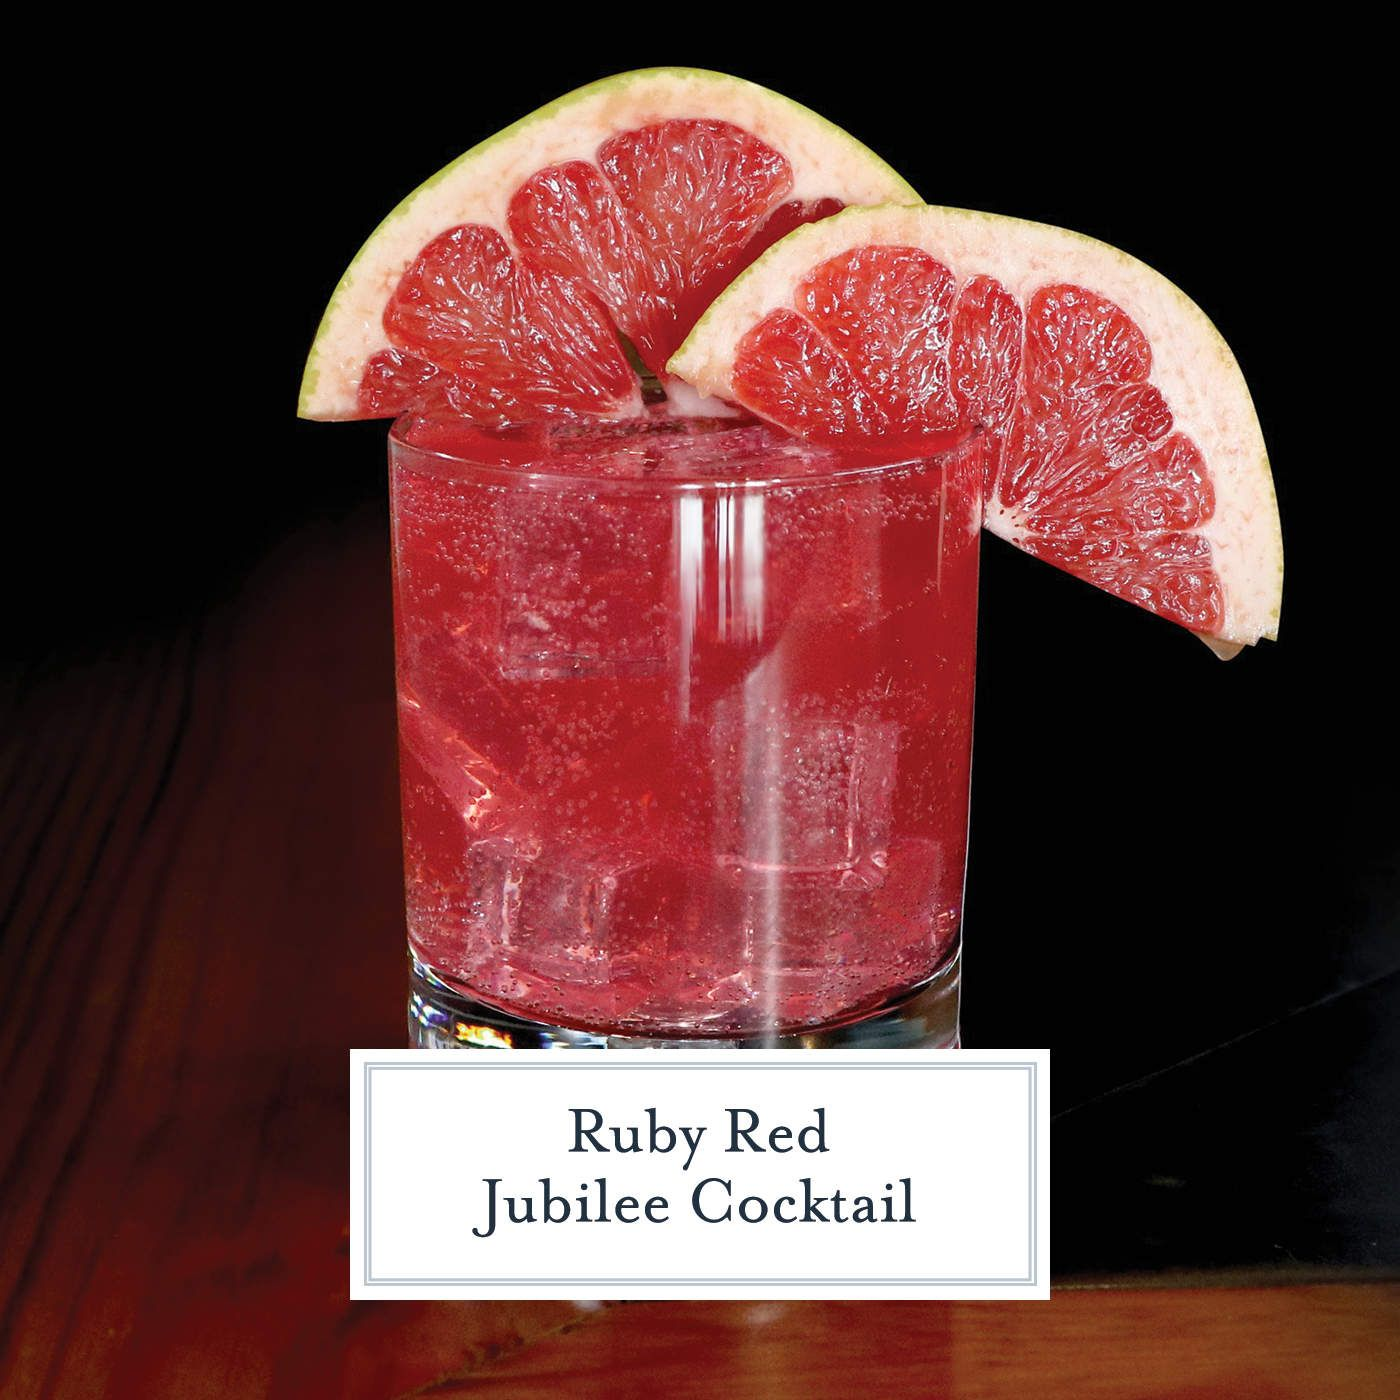 Ruby Red Jubilee Cocktail Is The Perfect Holiday Cocktail Made With Sagamore Spirit Rye Whiske Cocktail Recipes Easy Cinnamon Cocktail Perfect Holiday Cocktail